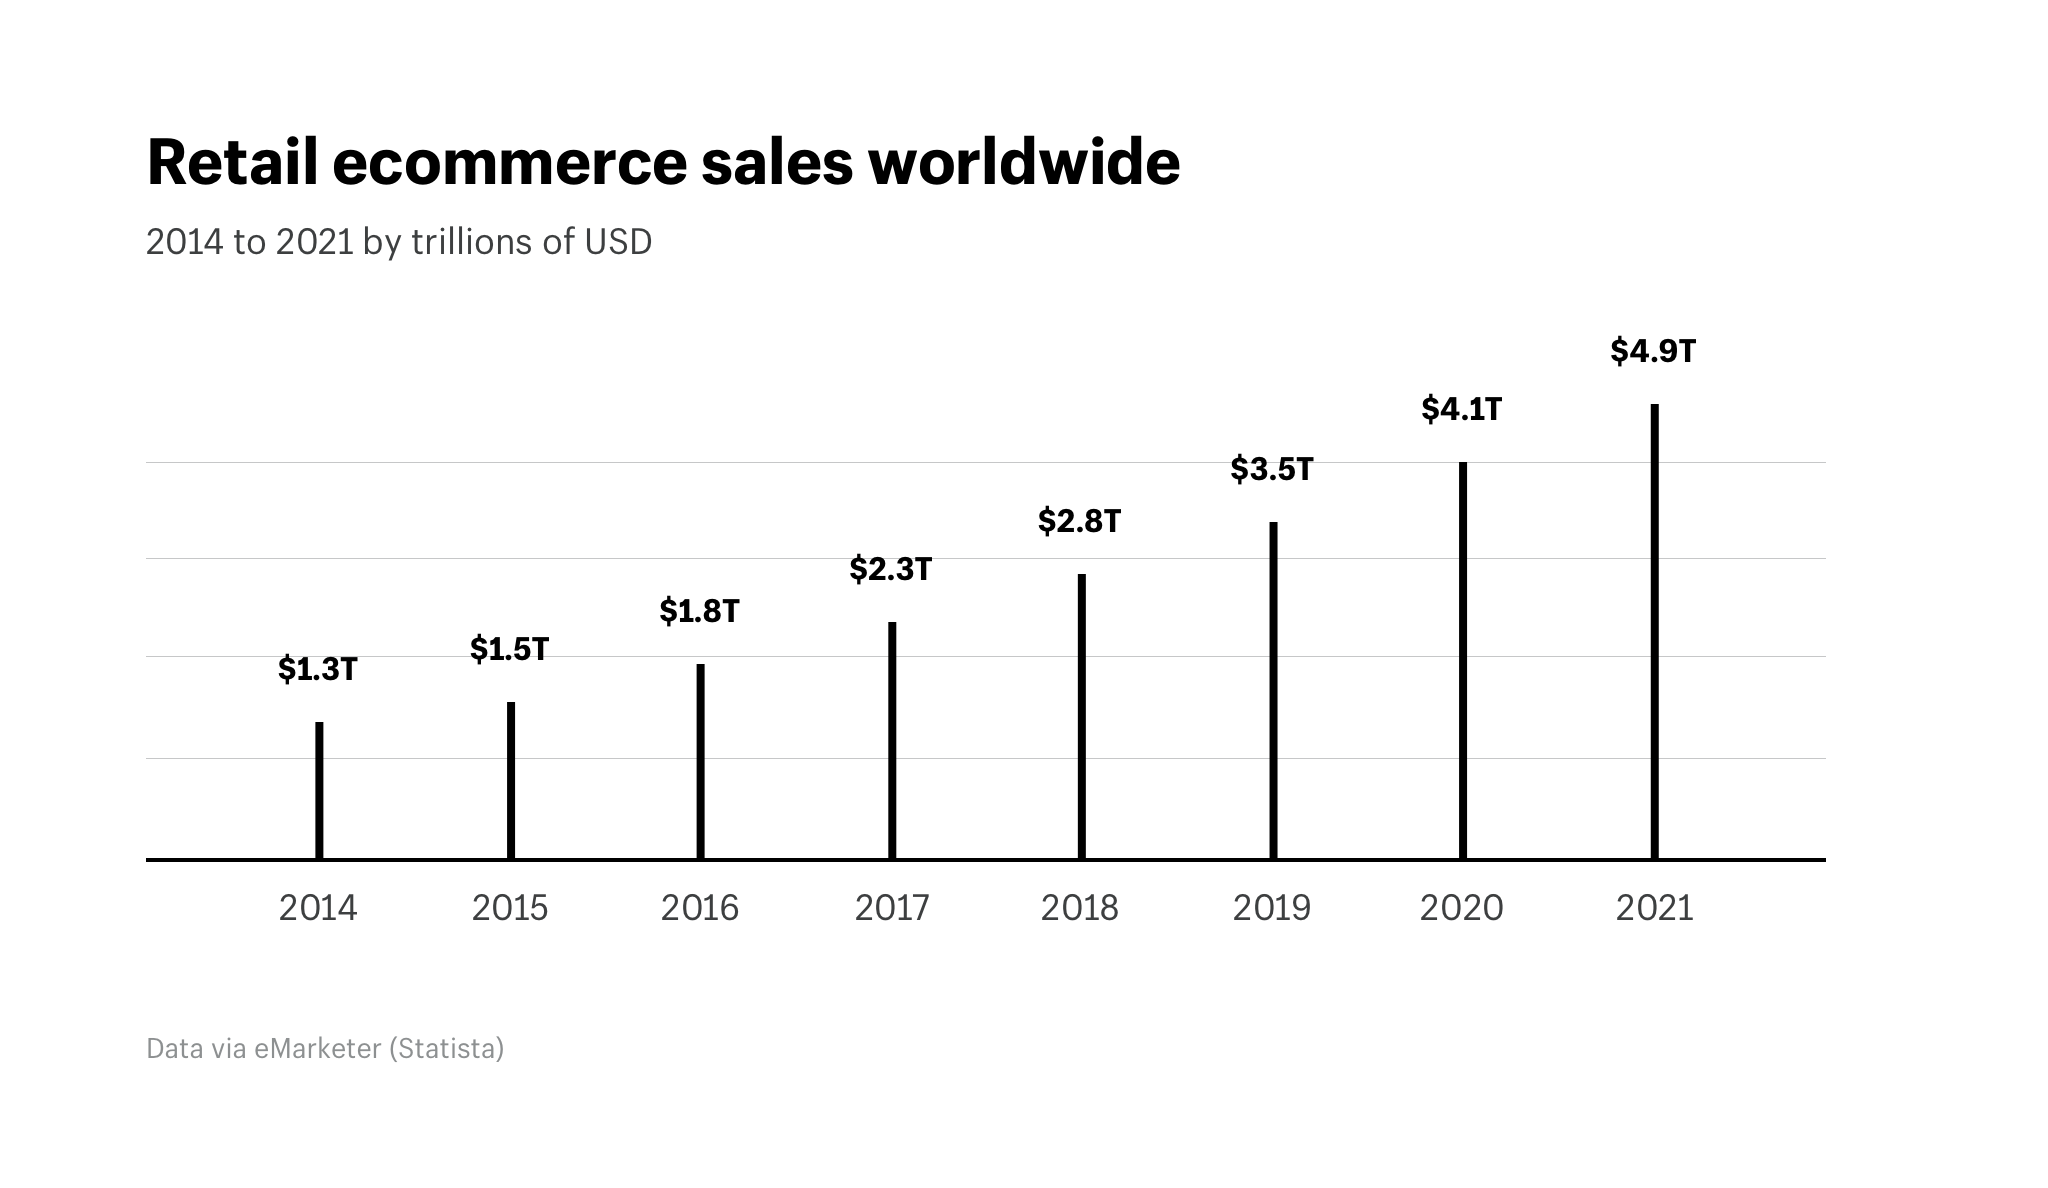 Global ecommerce market size: Retail ecommerce sales worldwide